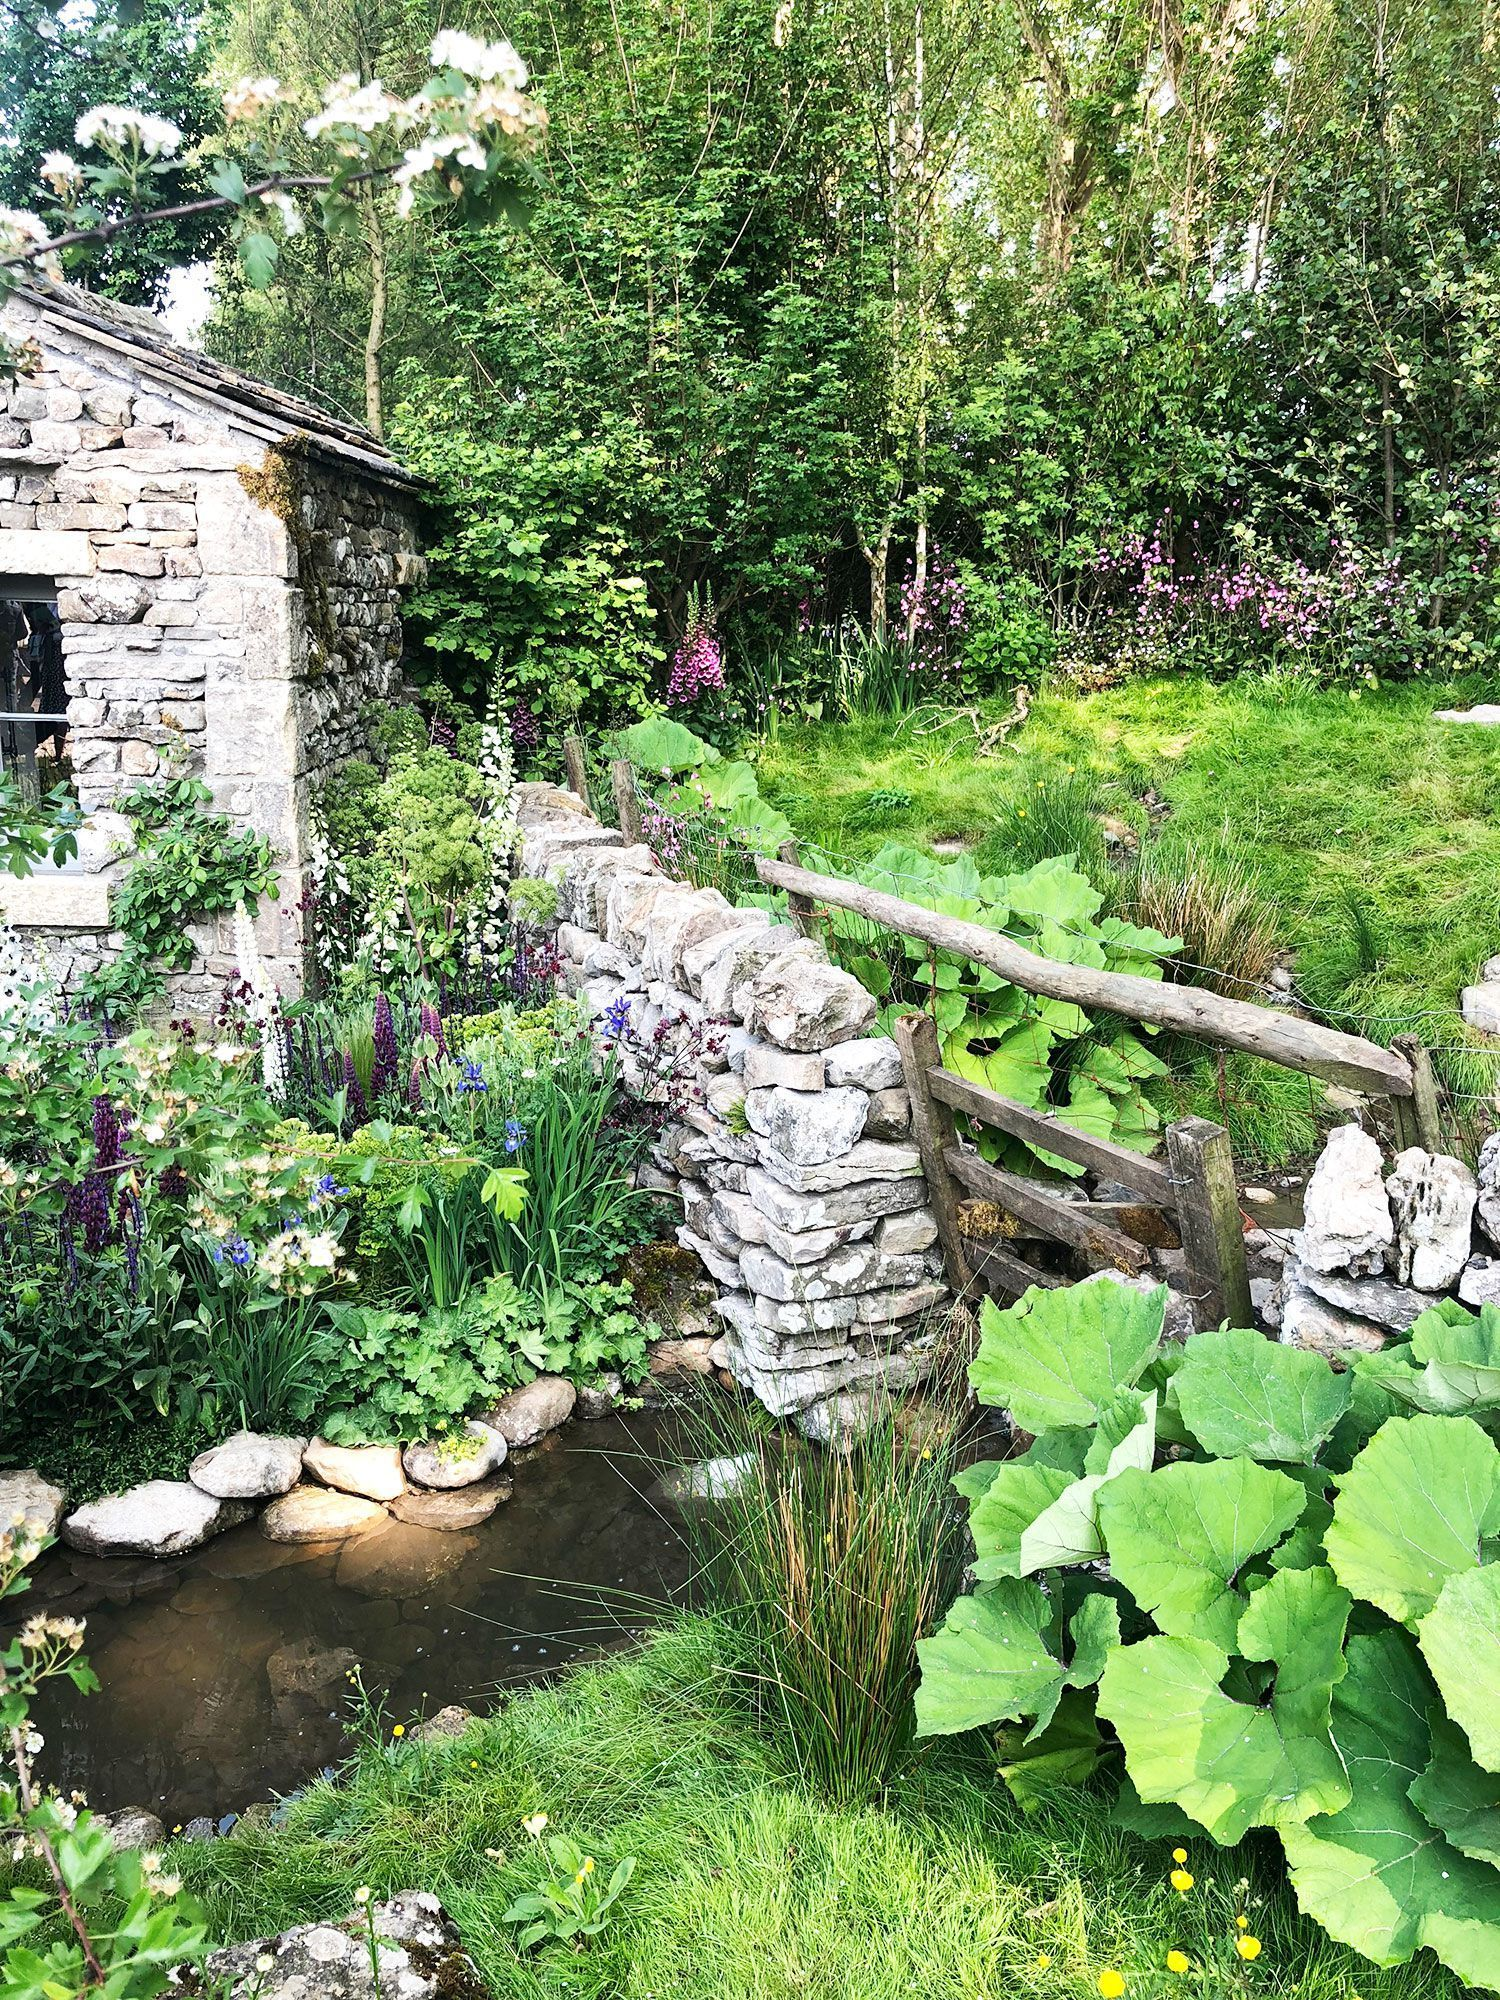 The winners of the Chelsea Flower Show People's Choice